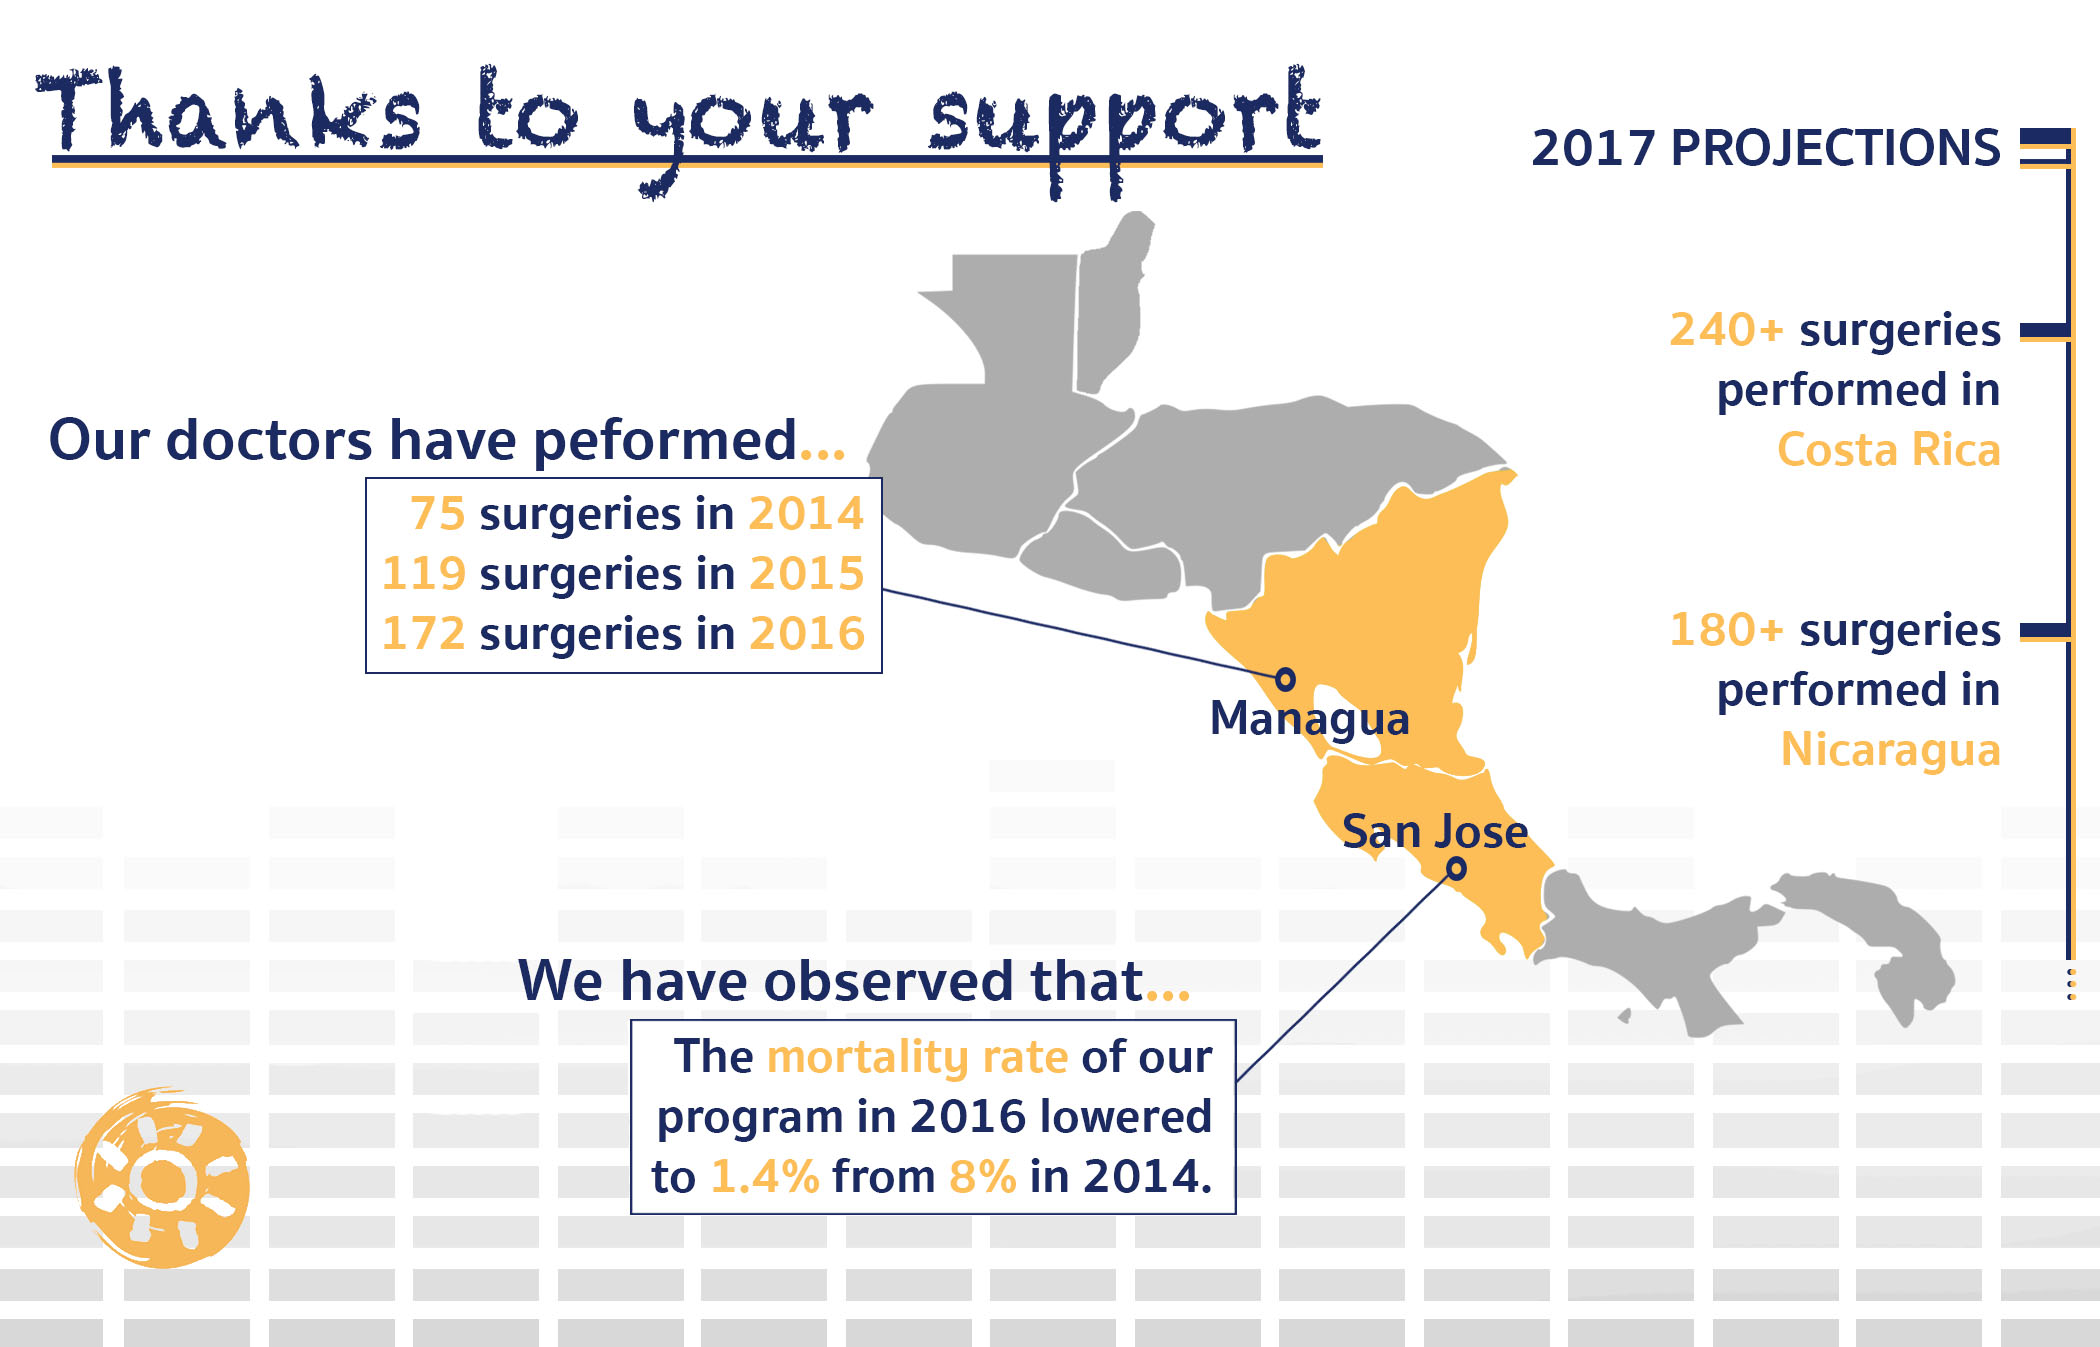 Heart disease statistics for the Surgeons of Hope program including how many surgeries have been performed